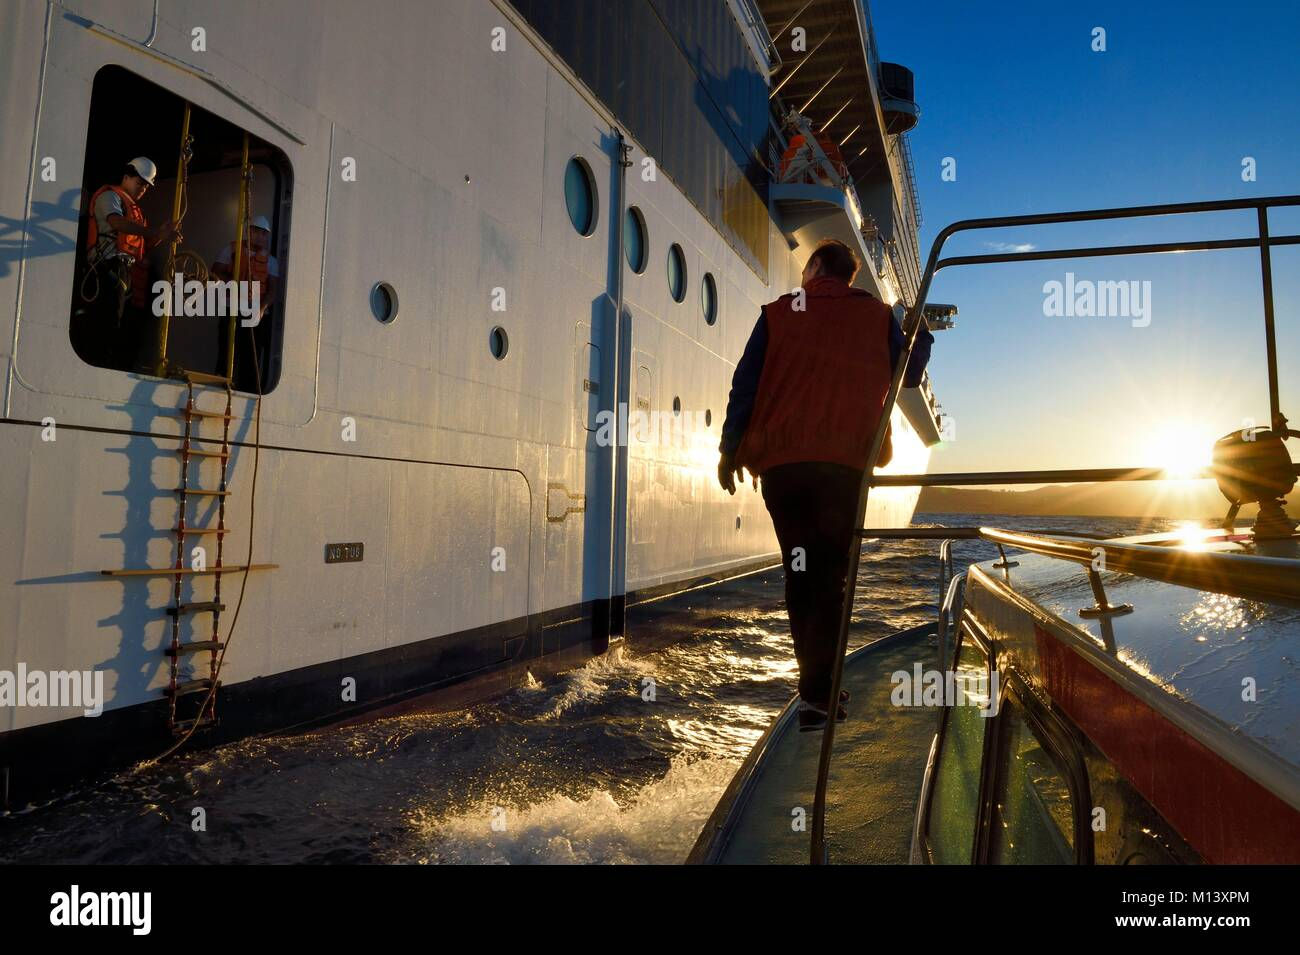 France, Bouches du Rhone, Marseille, the Maritime Pilot Jean-François Suhas, preparing to embark aboard a cruise - Stock Image